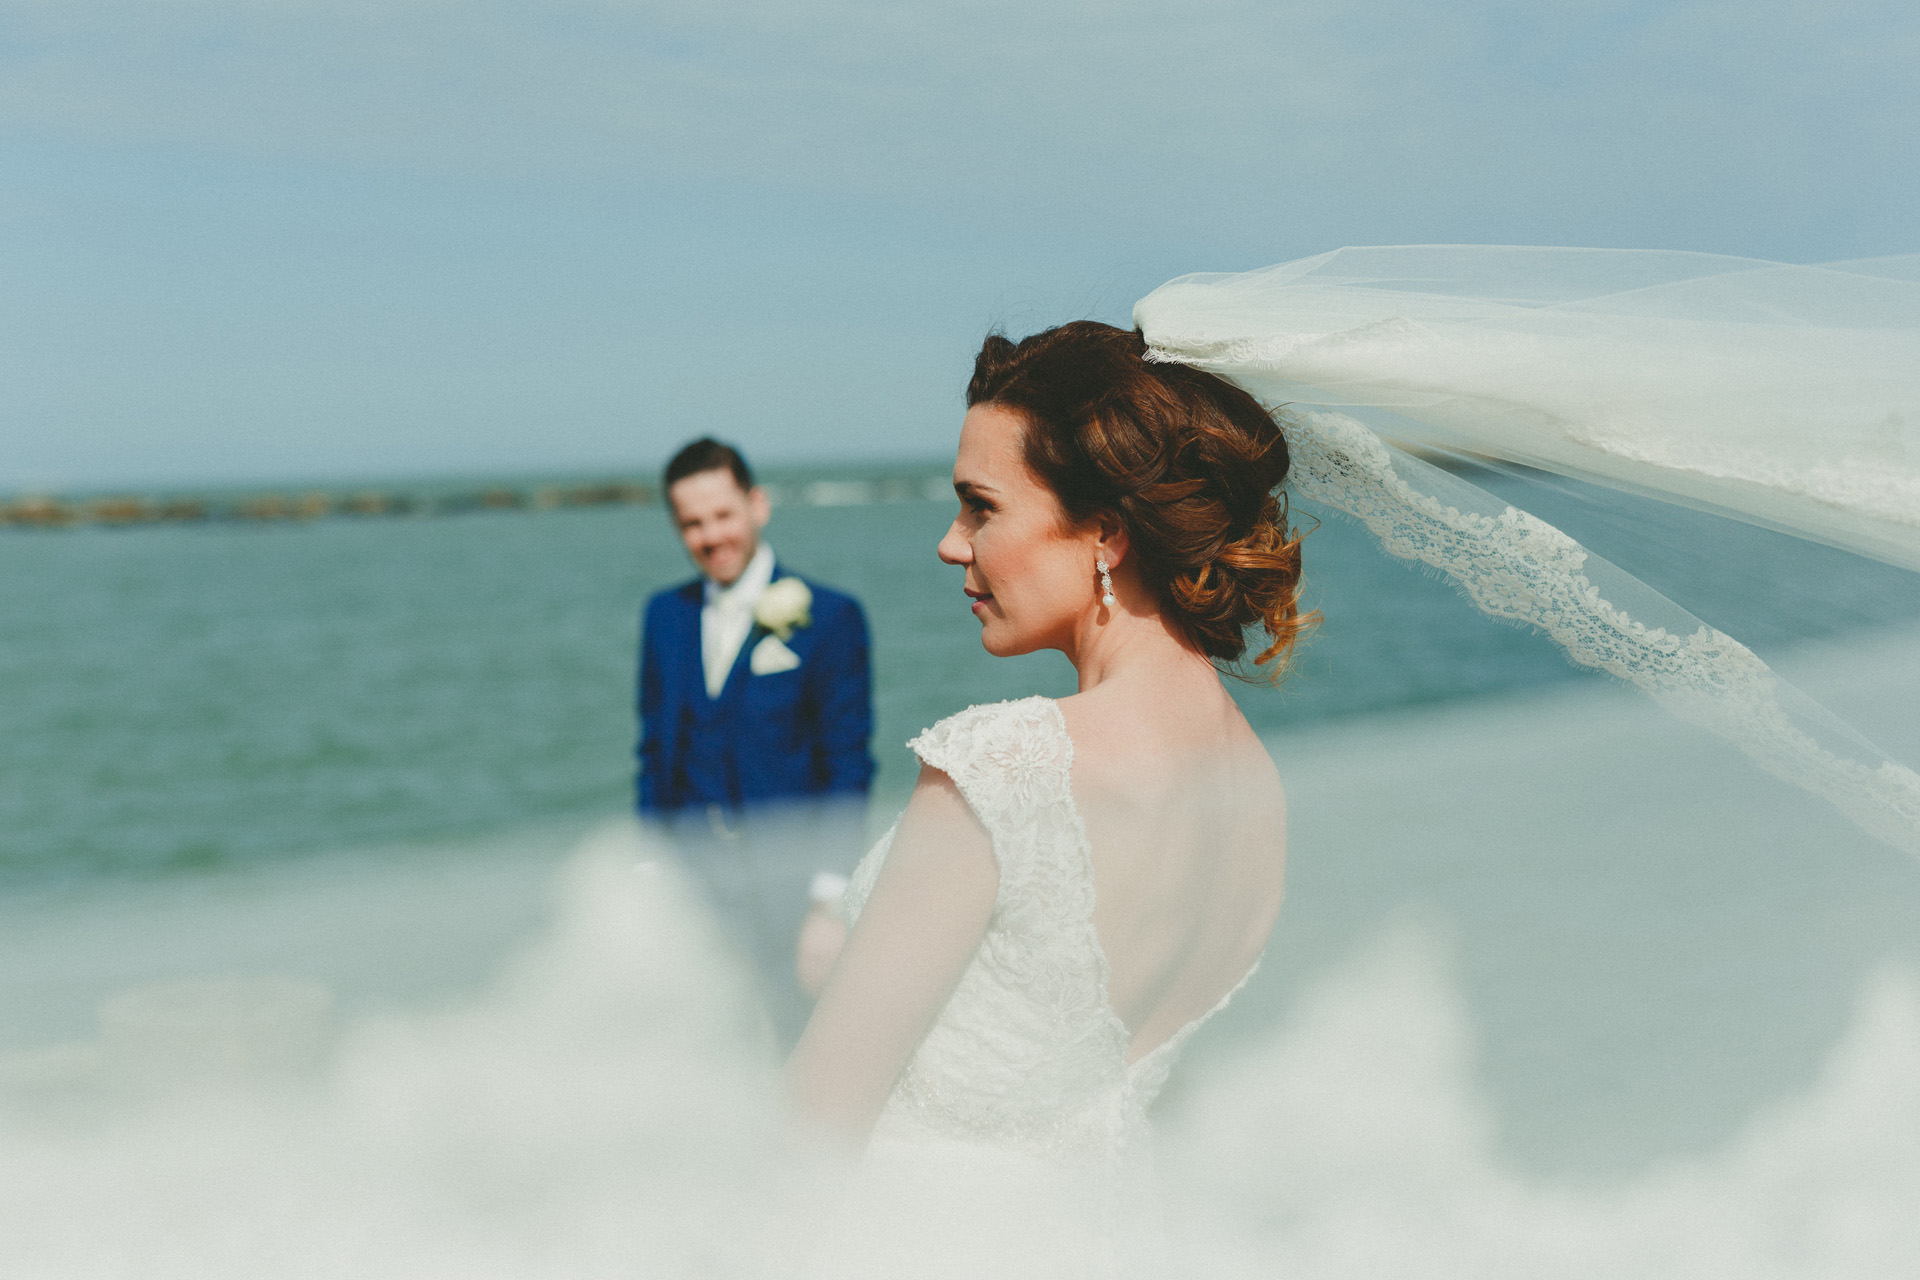 Royal-marine-hotel-wedding-photos